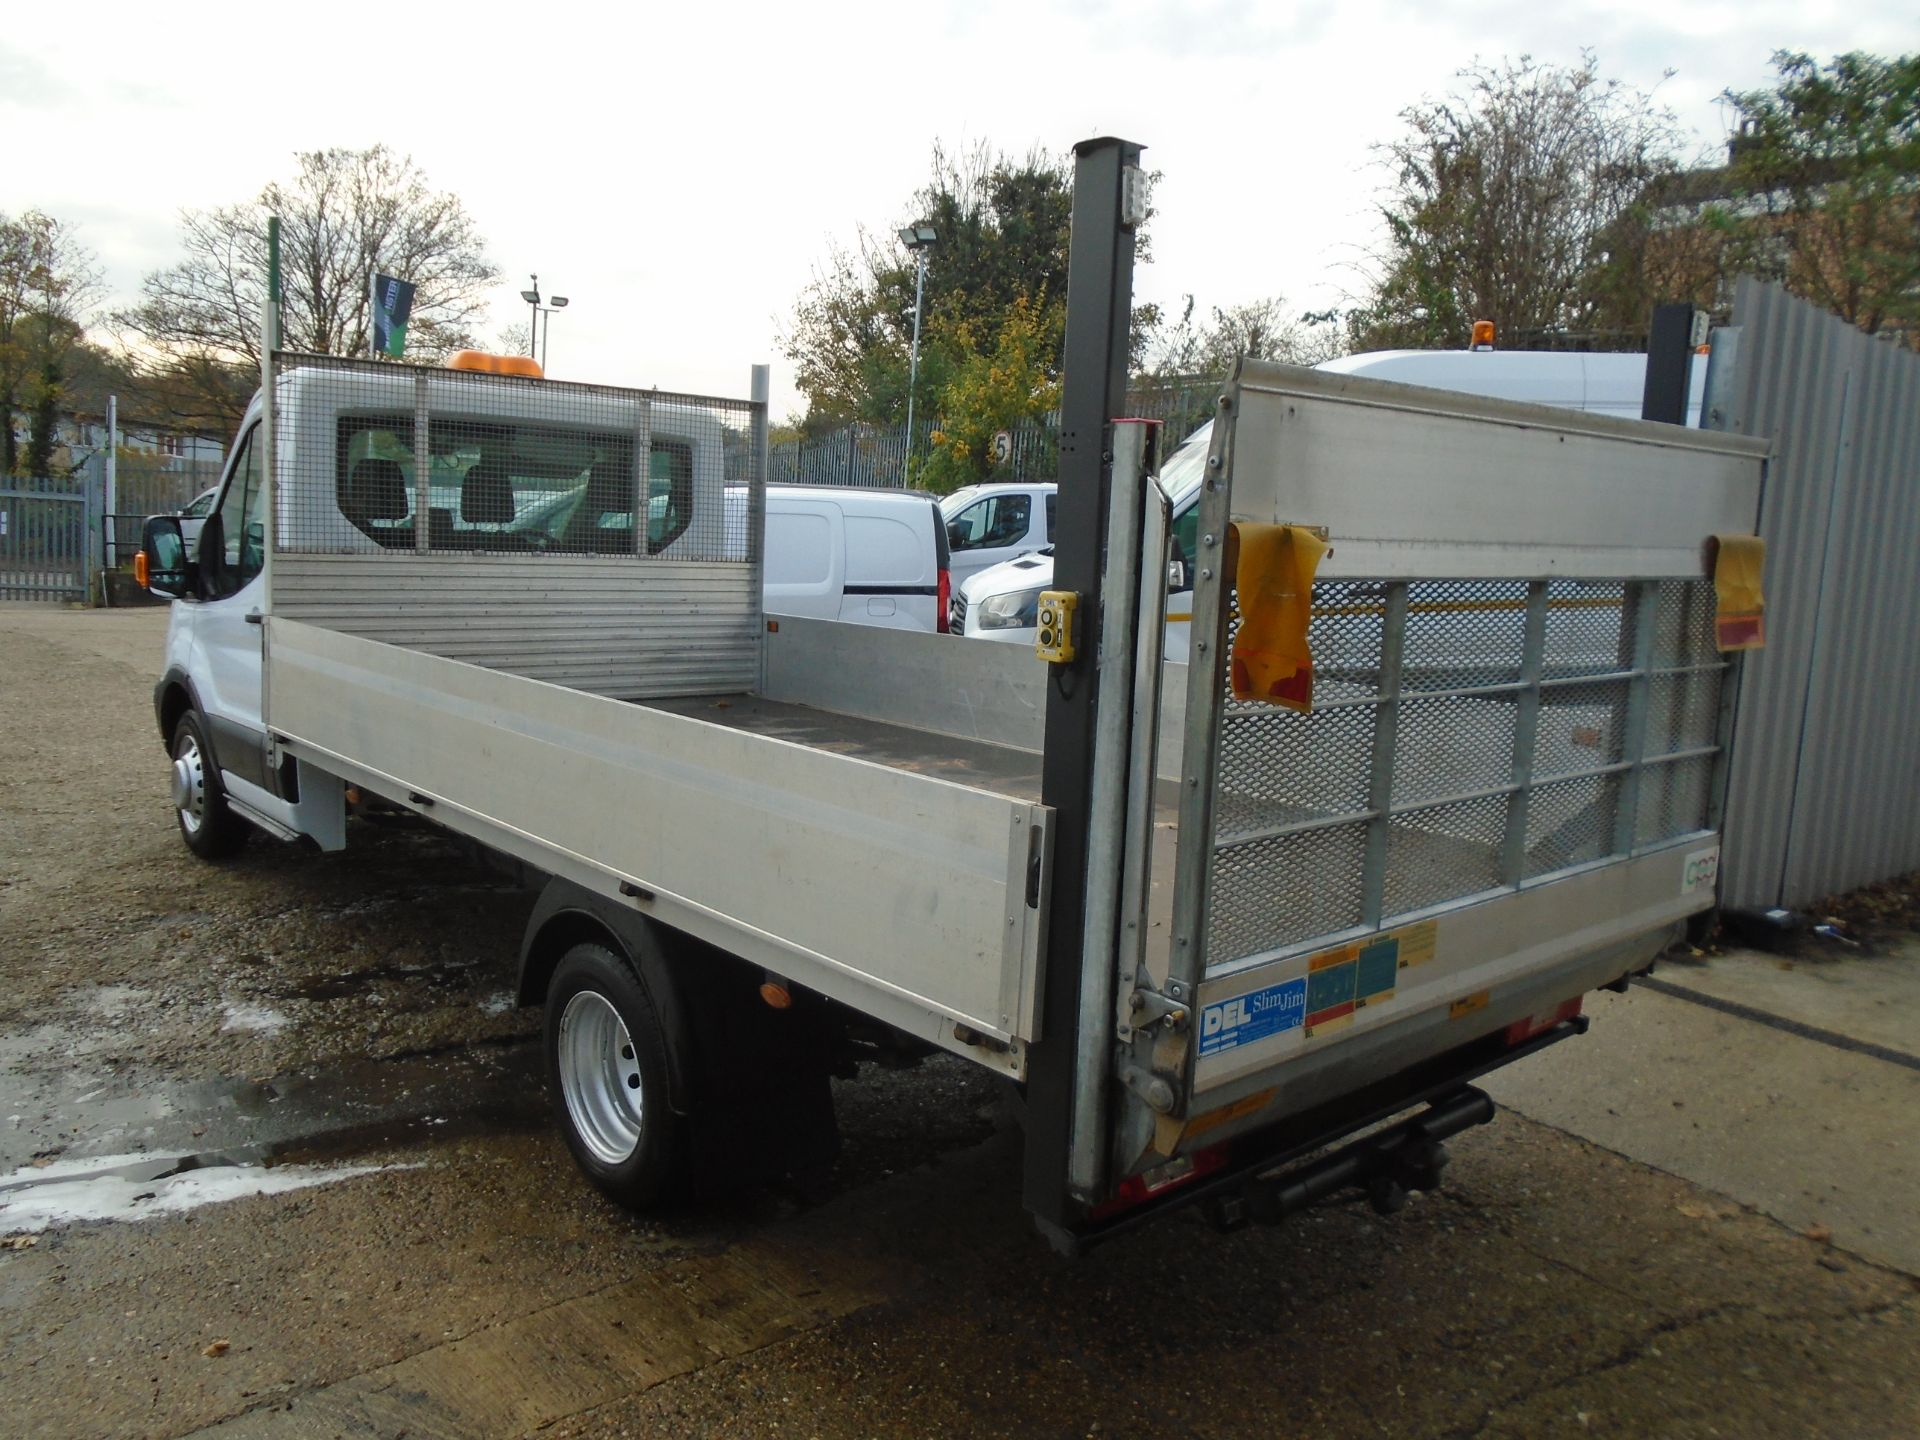 2016 Ford Transit 2.2 Tdci 125Ps Chassis Cab (FL66FCA) Image 6